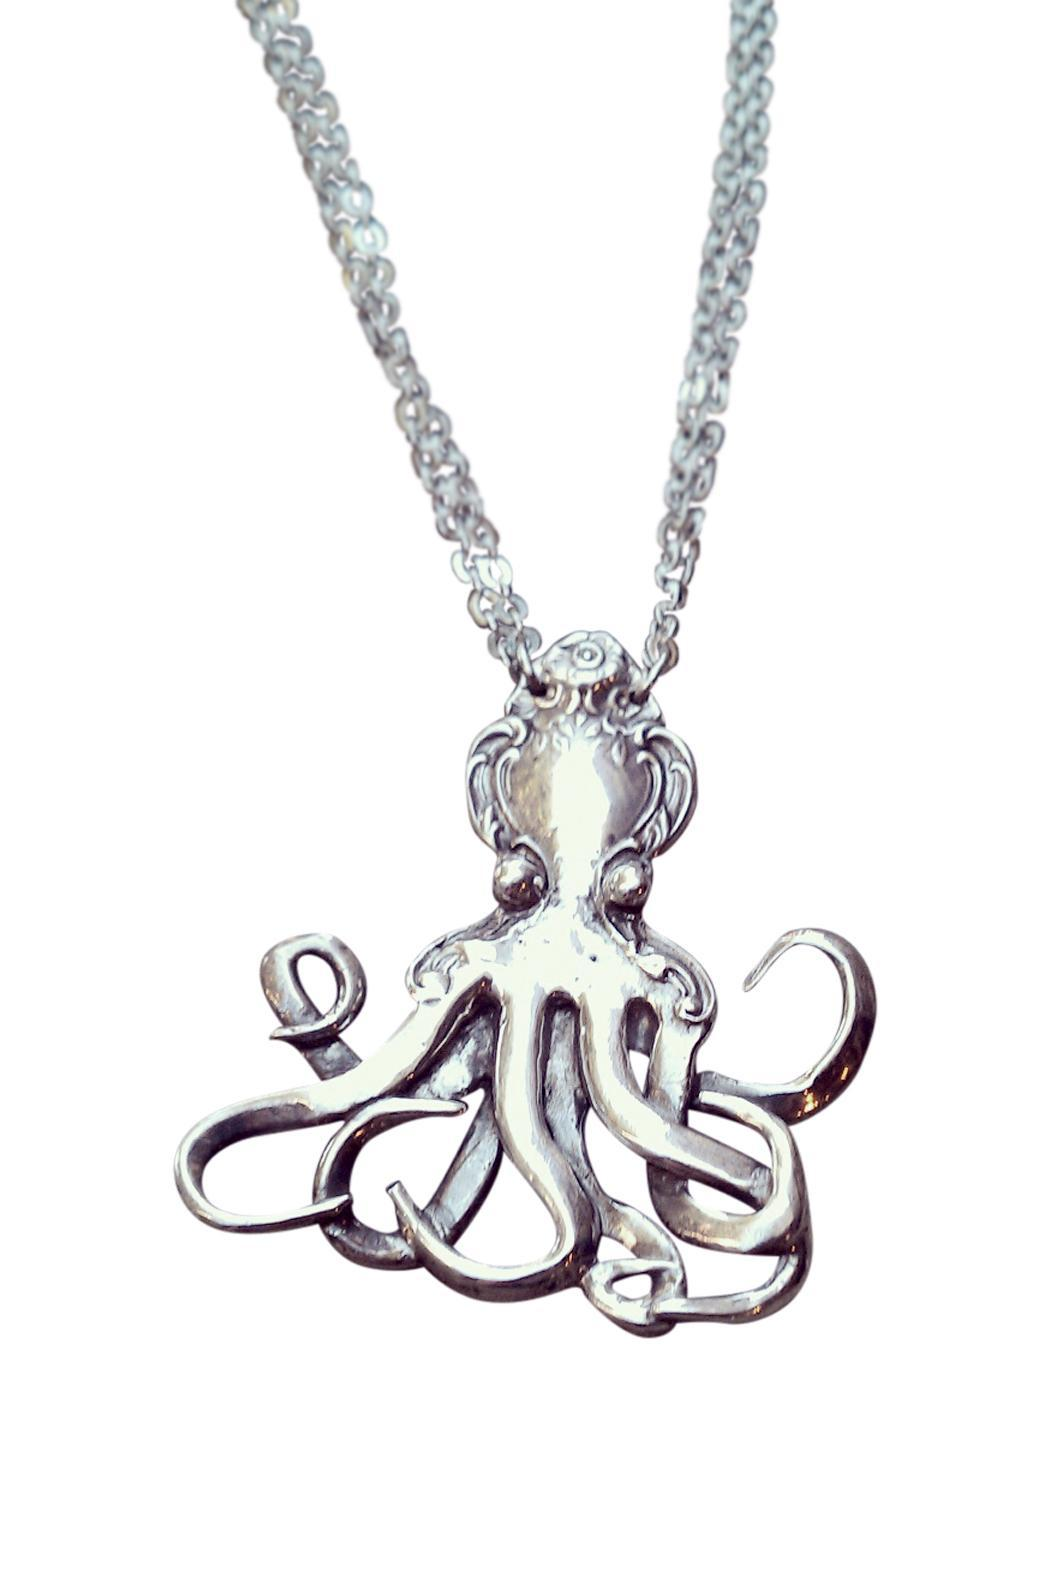 made uk necklace pendant the landlocked love a co under handcrafted jewellery enchanment silver beautiful sea cambridge coin growler hairy octopus in underwater collection